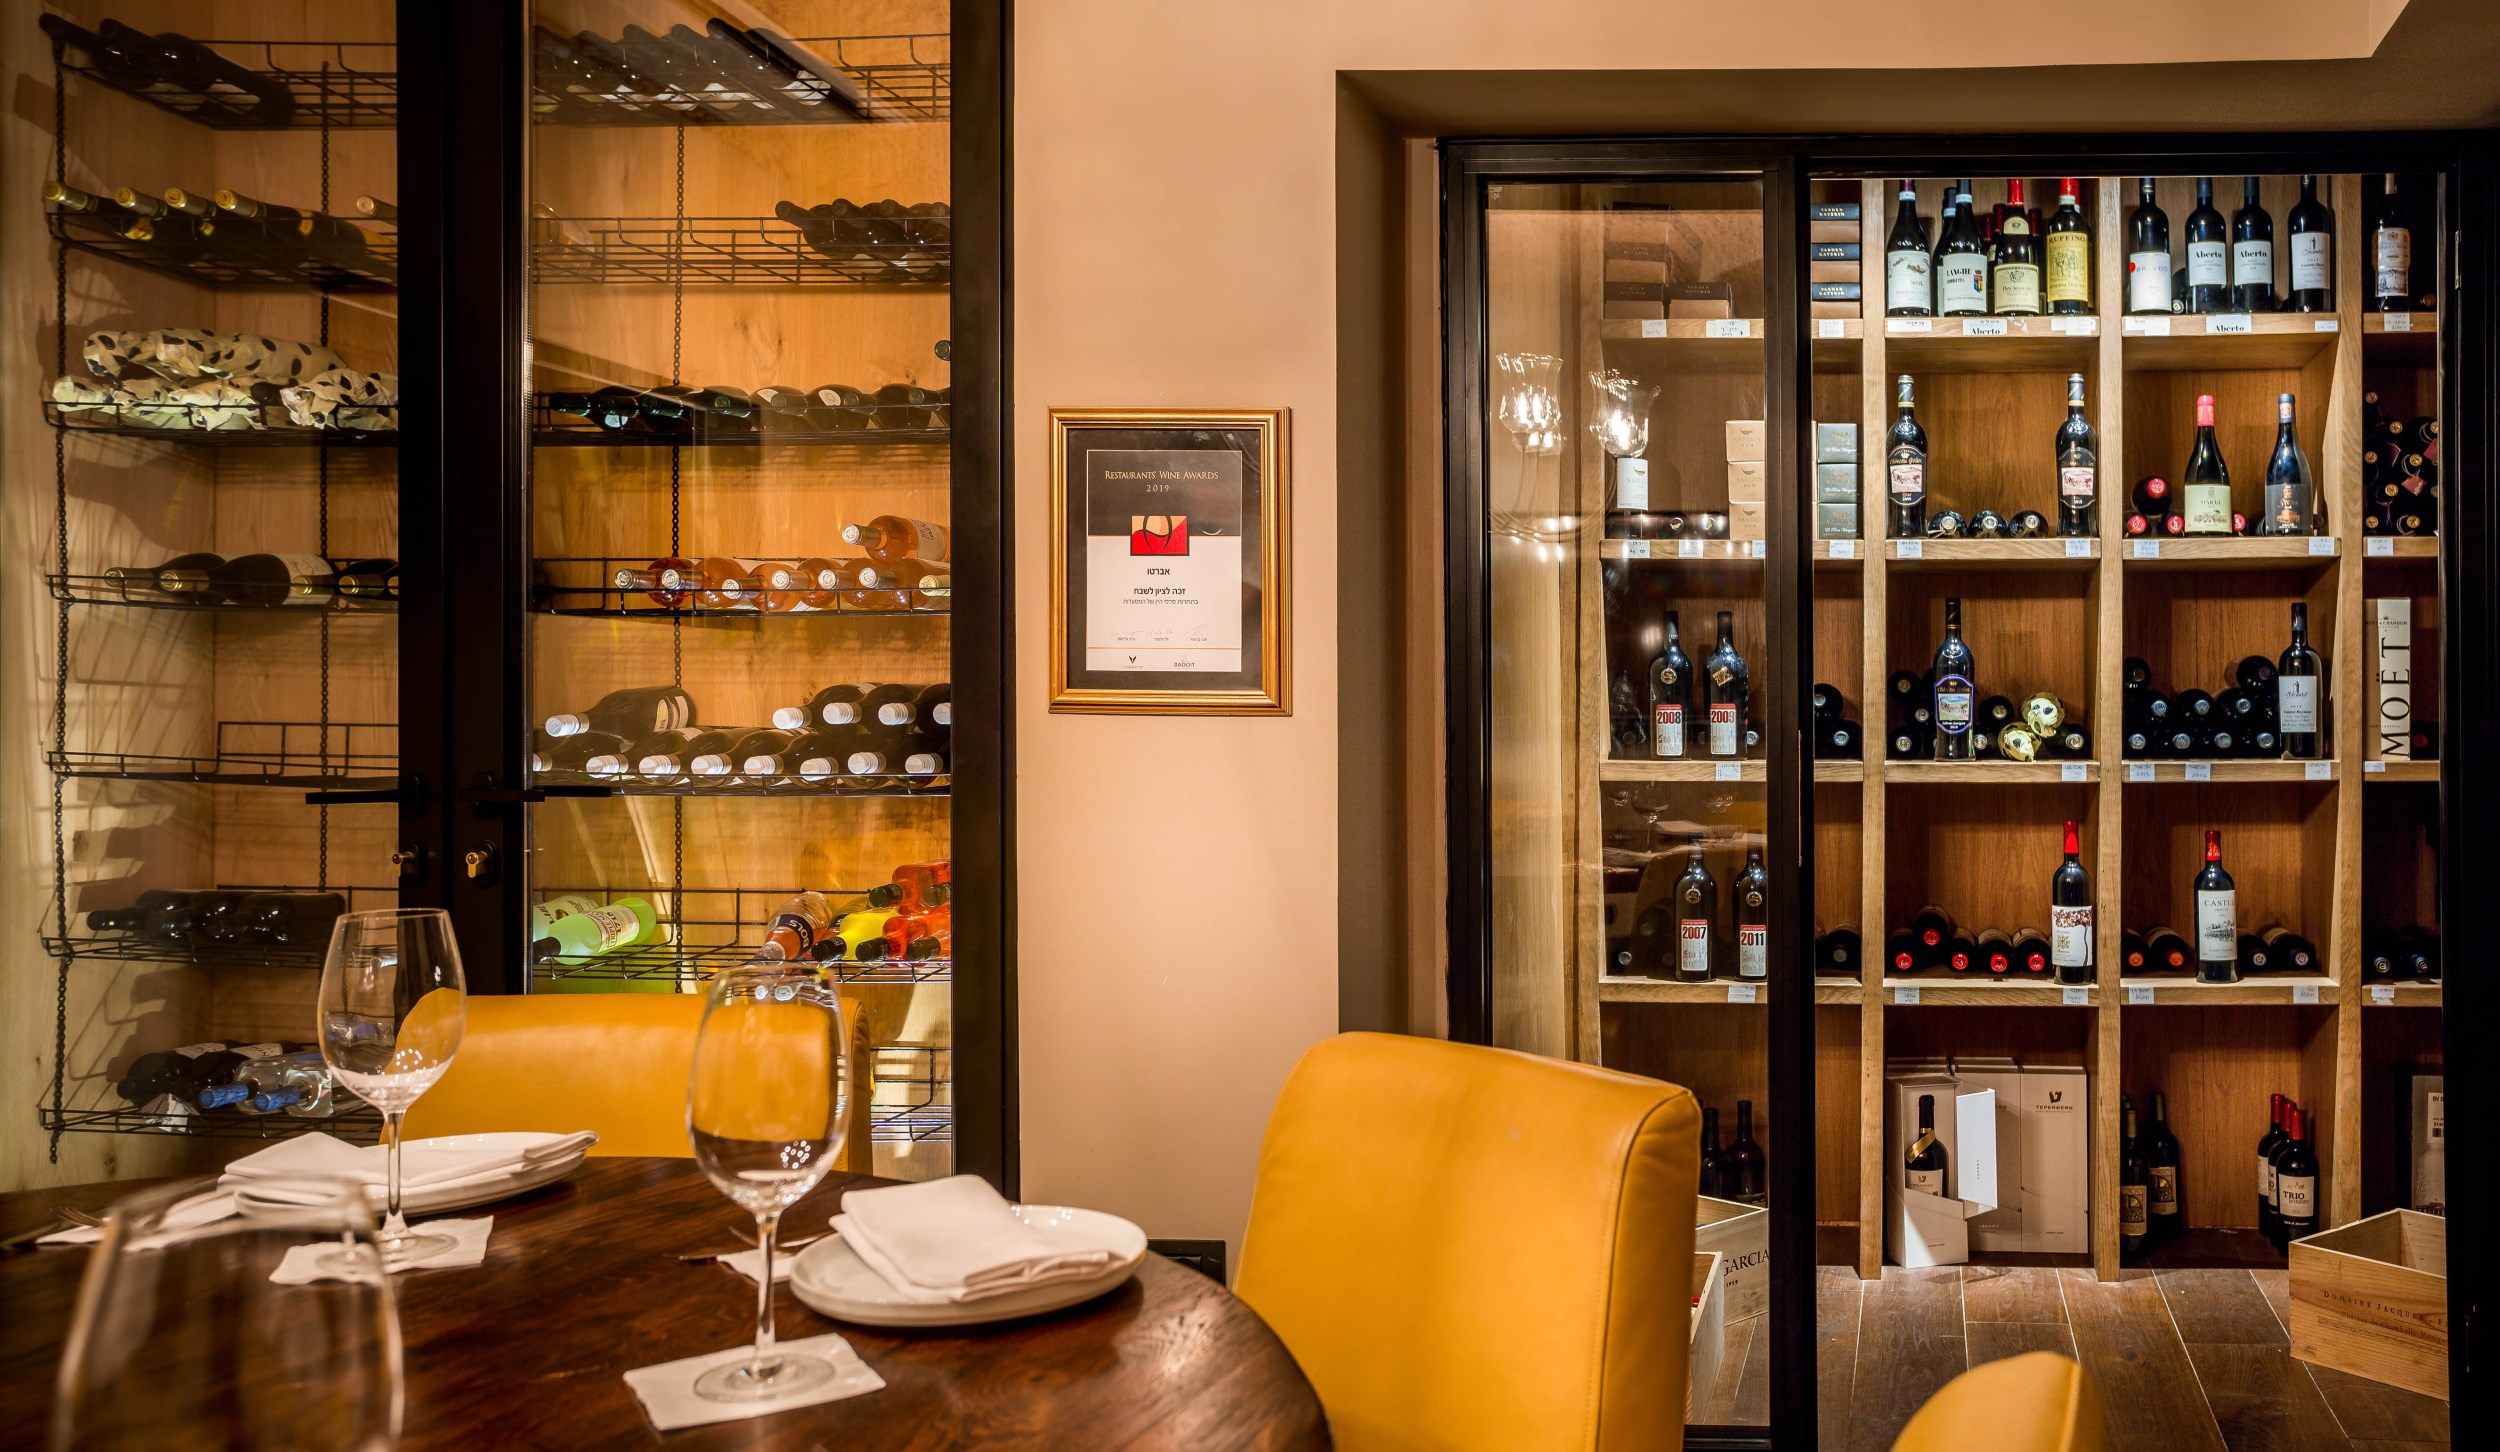 Hotel Lear - a wine room, a cigar room